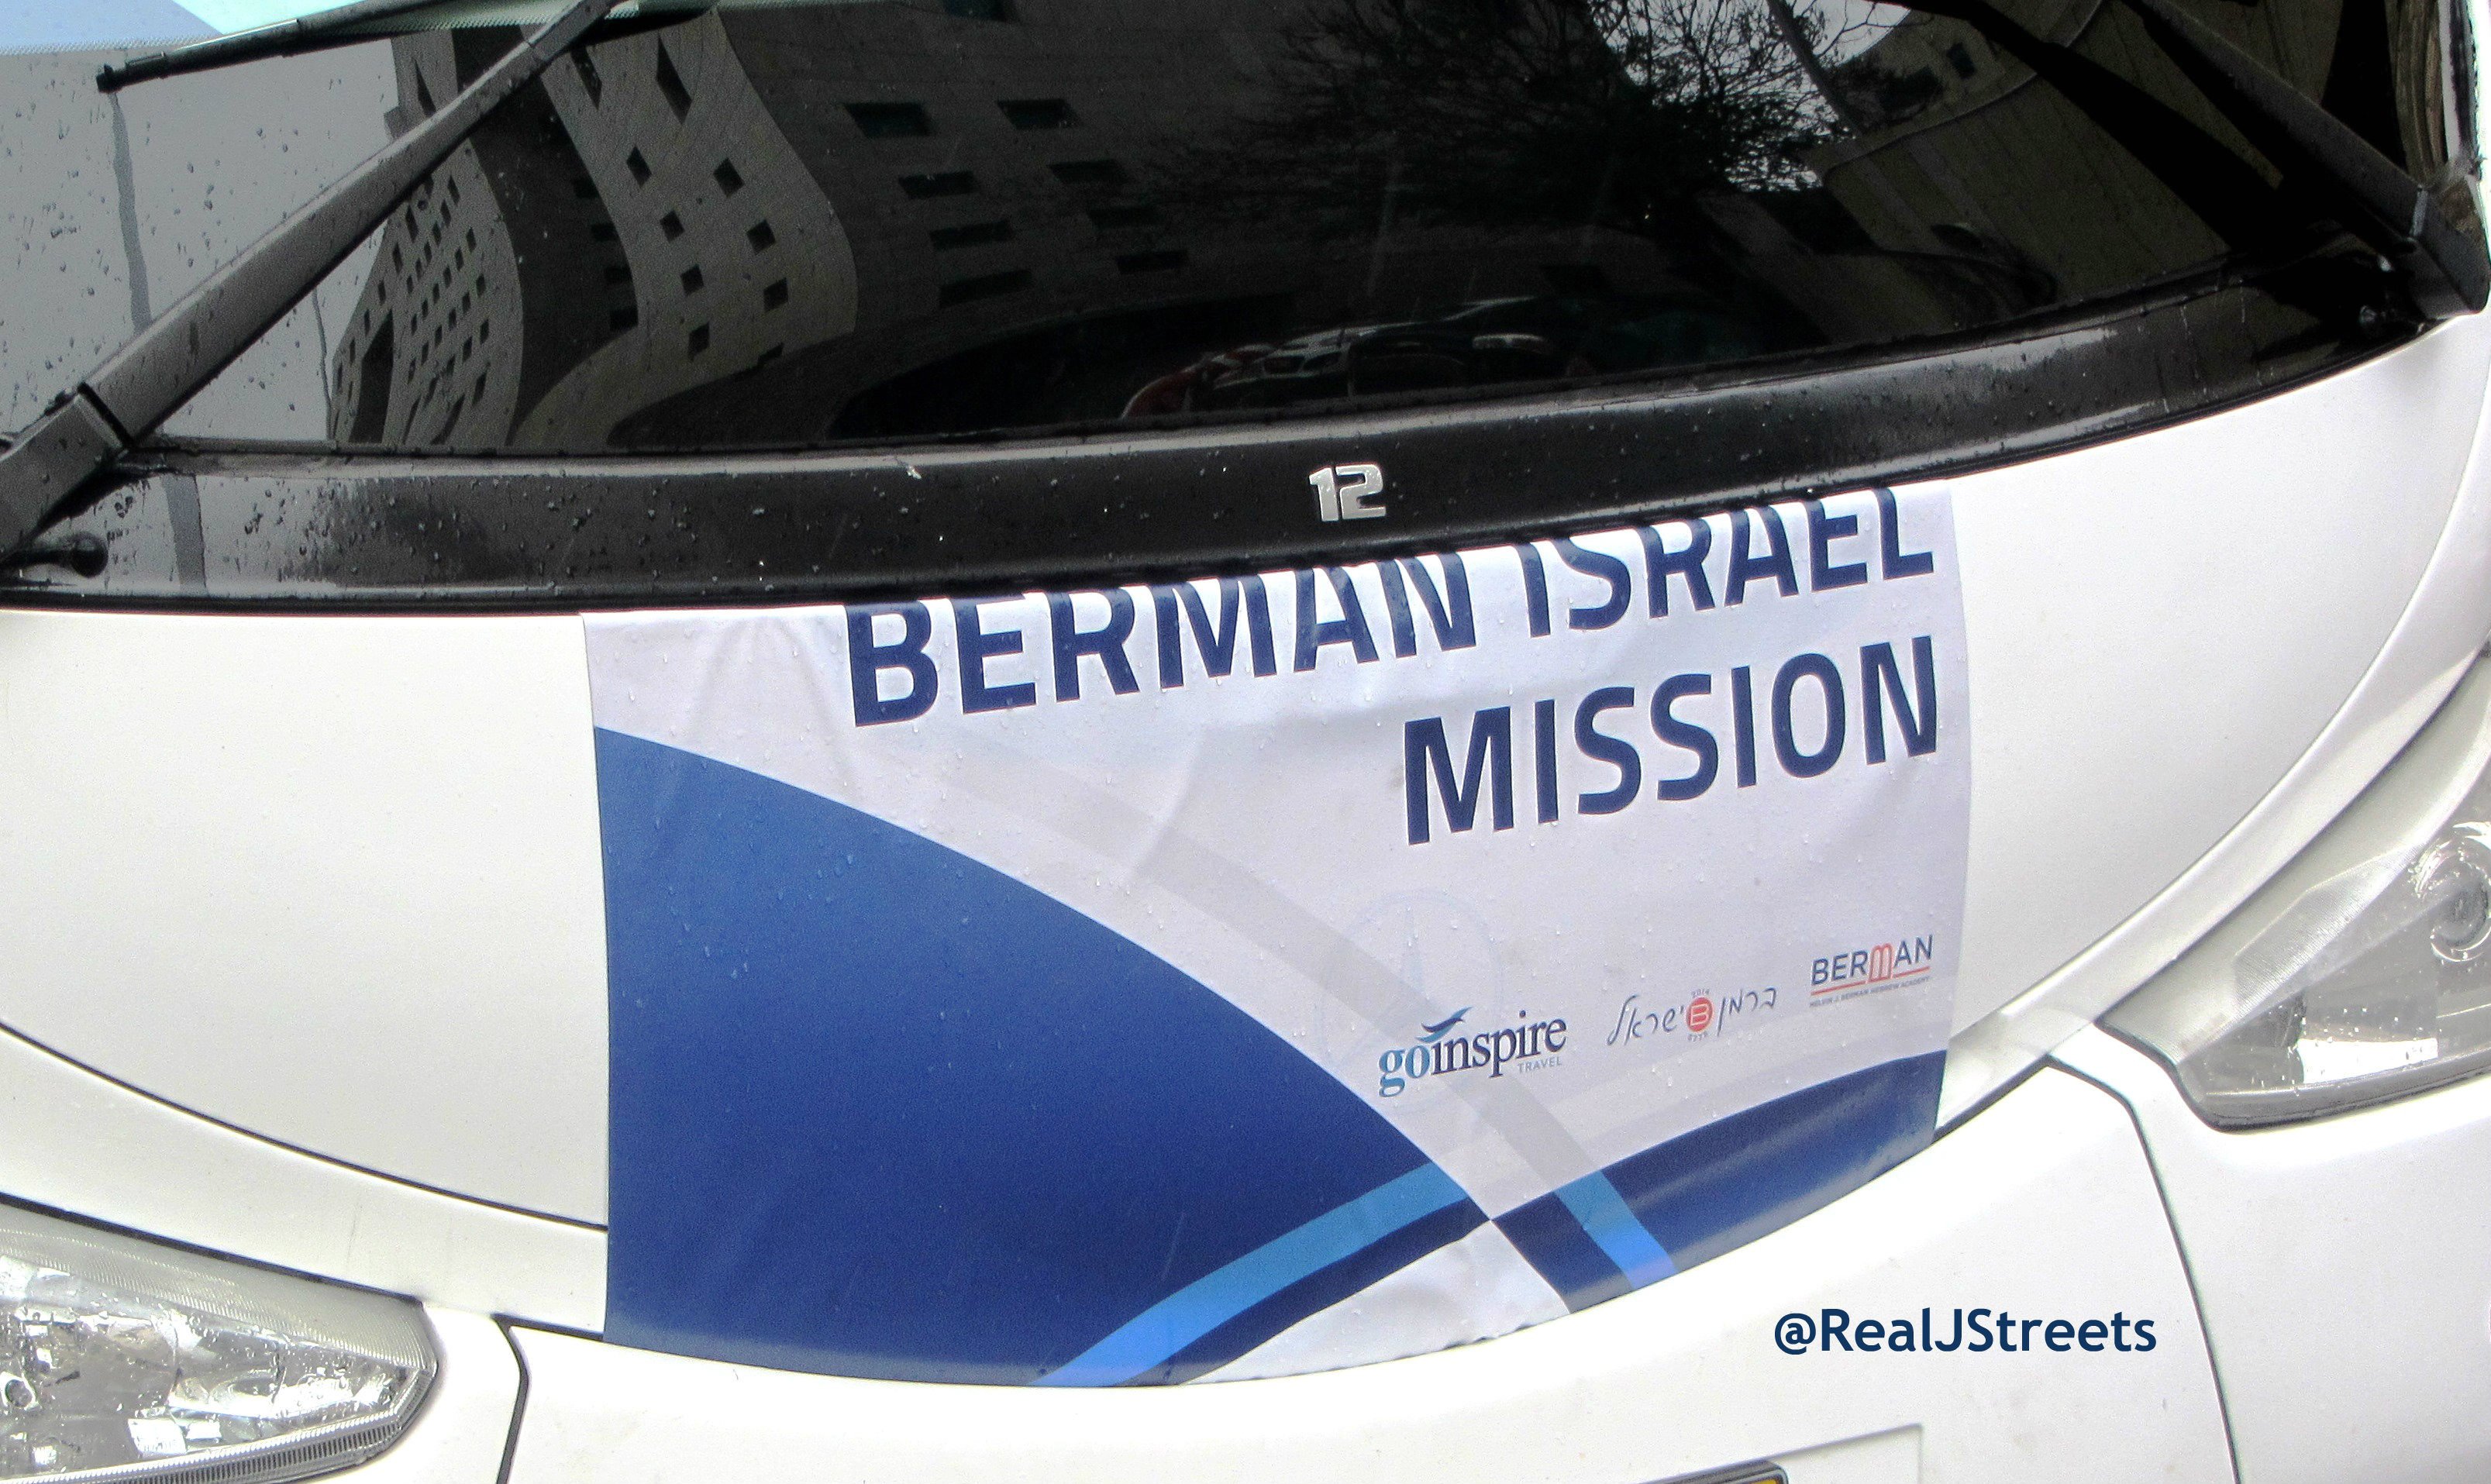 Jerusalem Israel bus banner from Berman Hebrew Academy